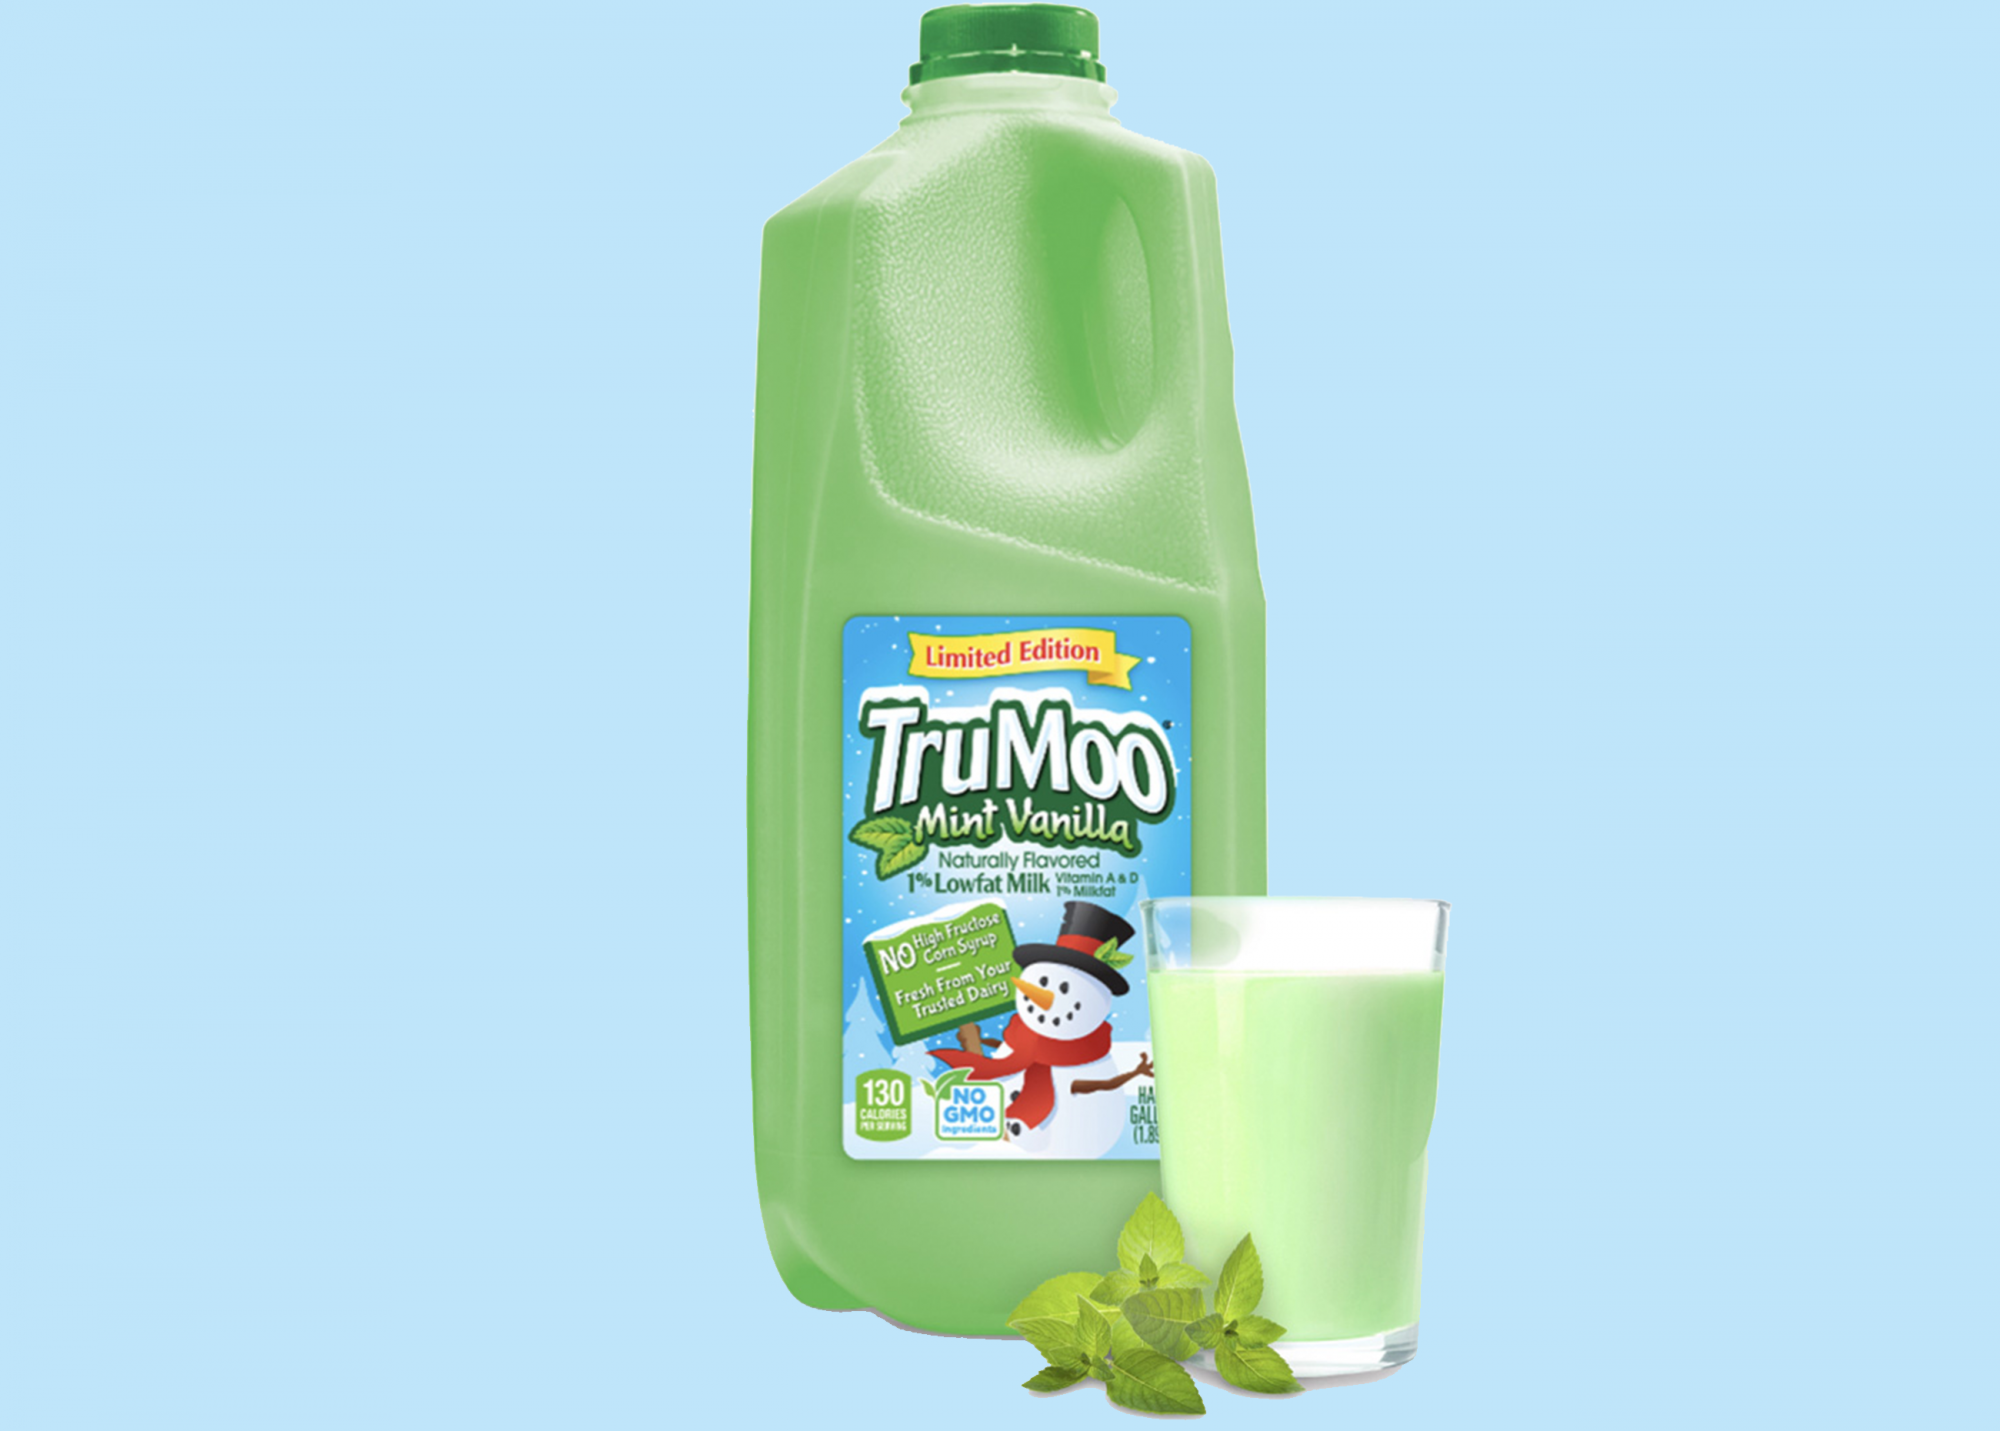 Trumoo Mint Milk